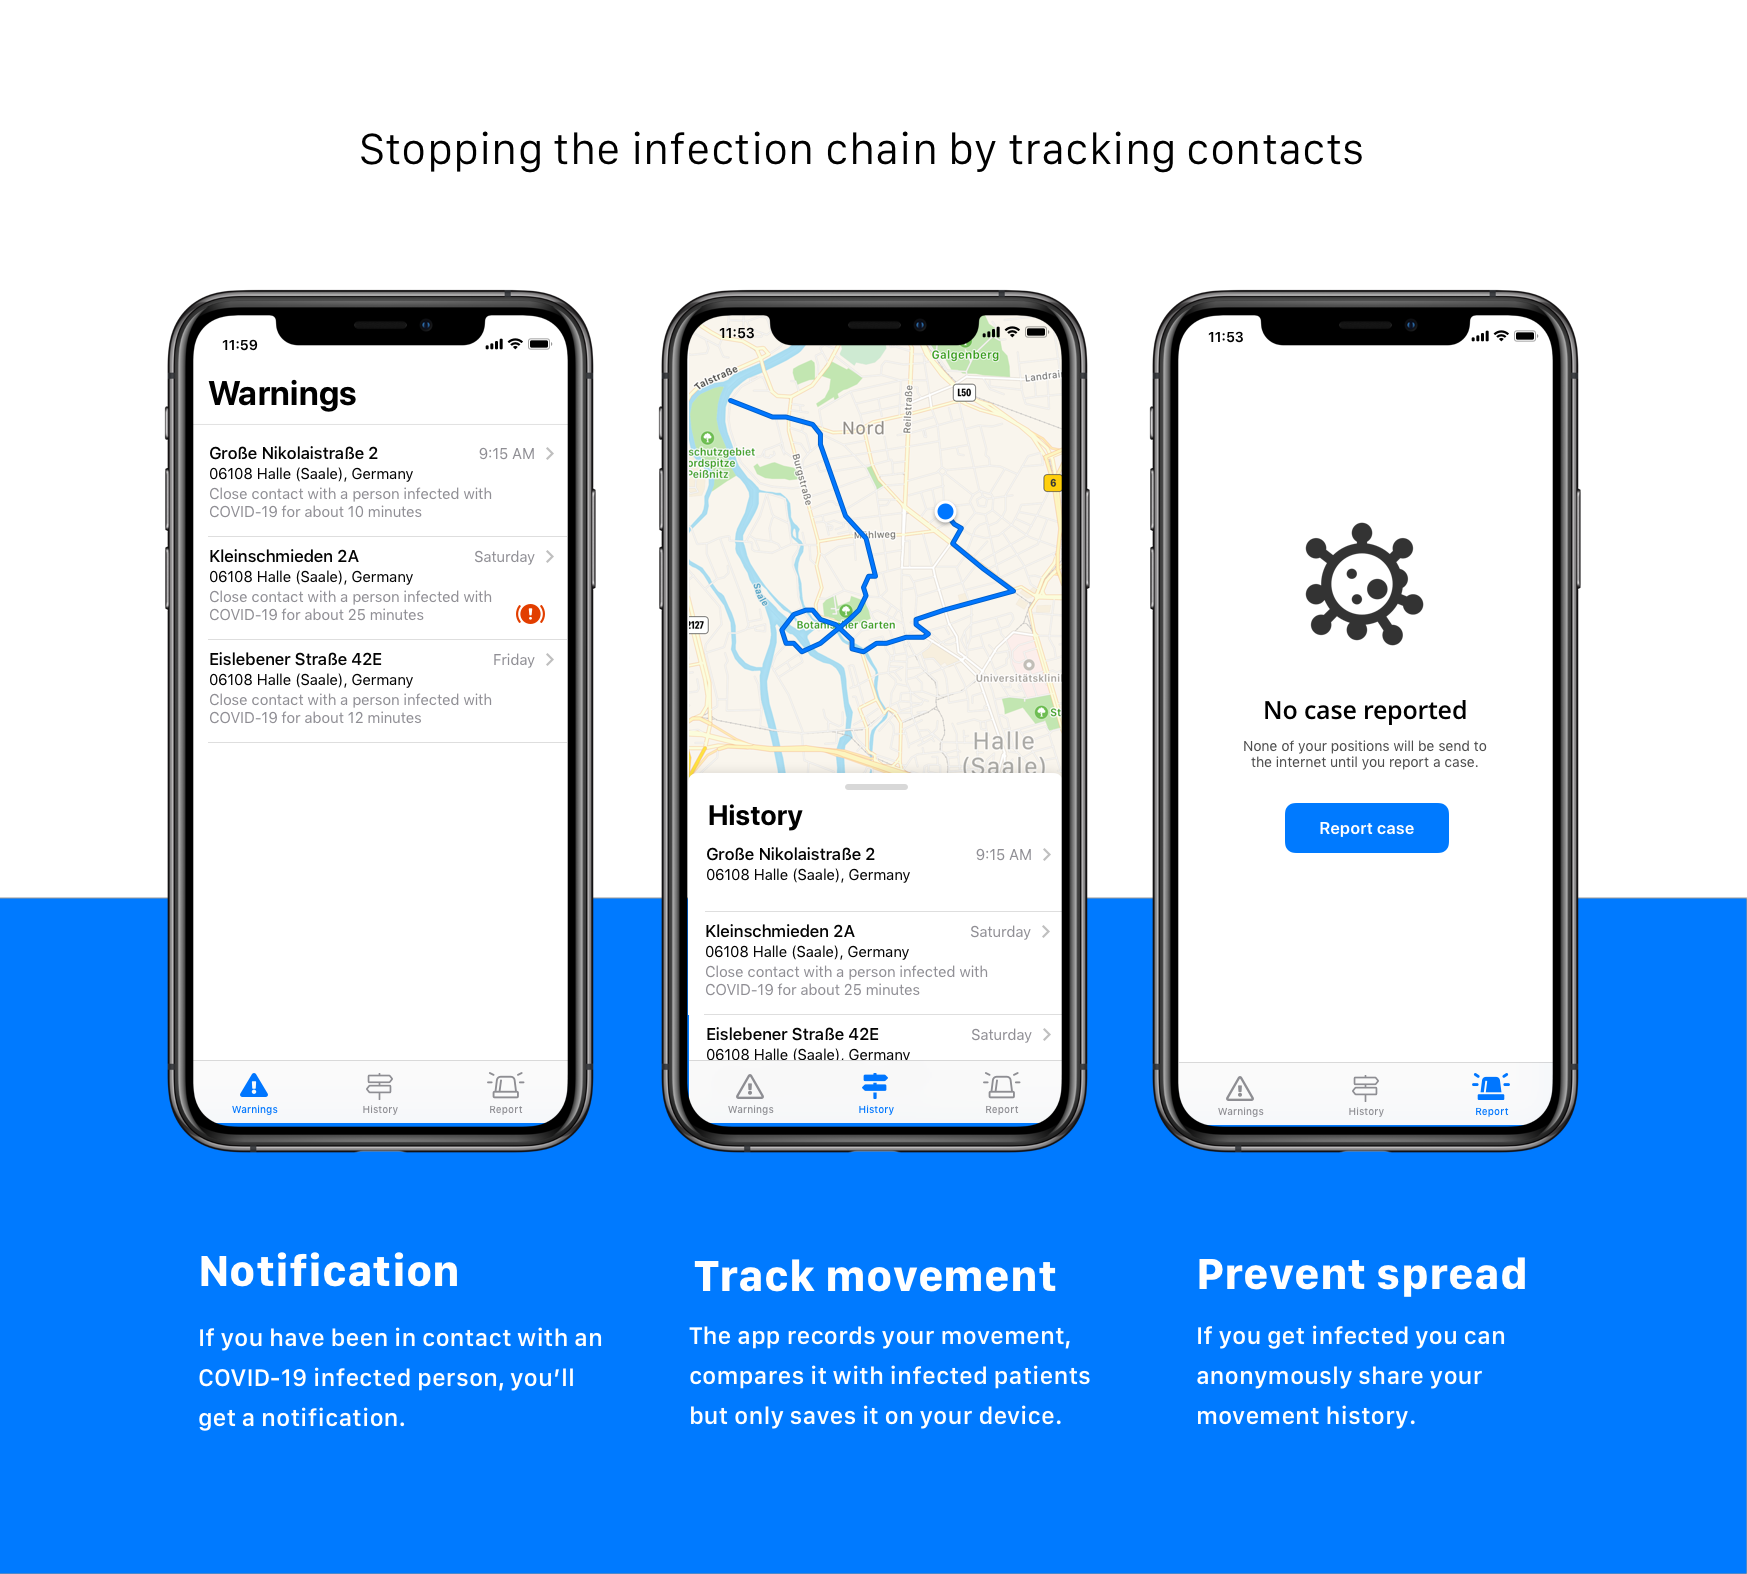 Infection chain tracker